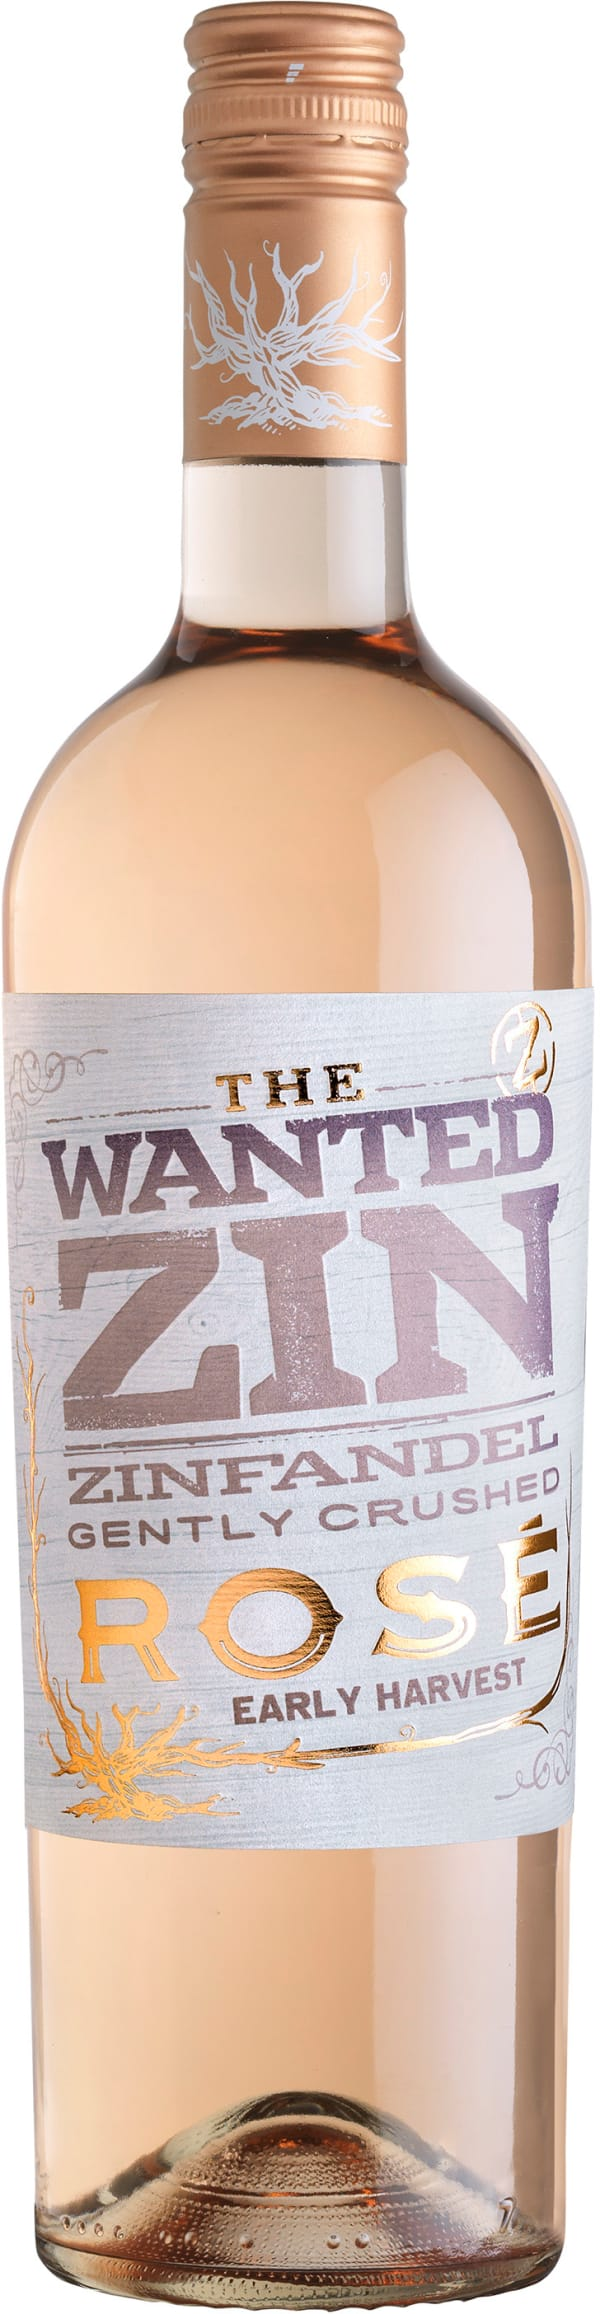 The Wanted Zin Rosé  2019